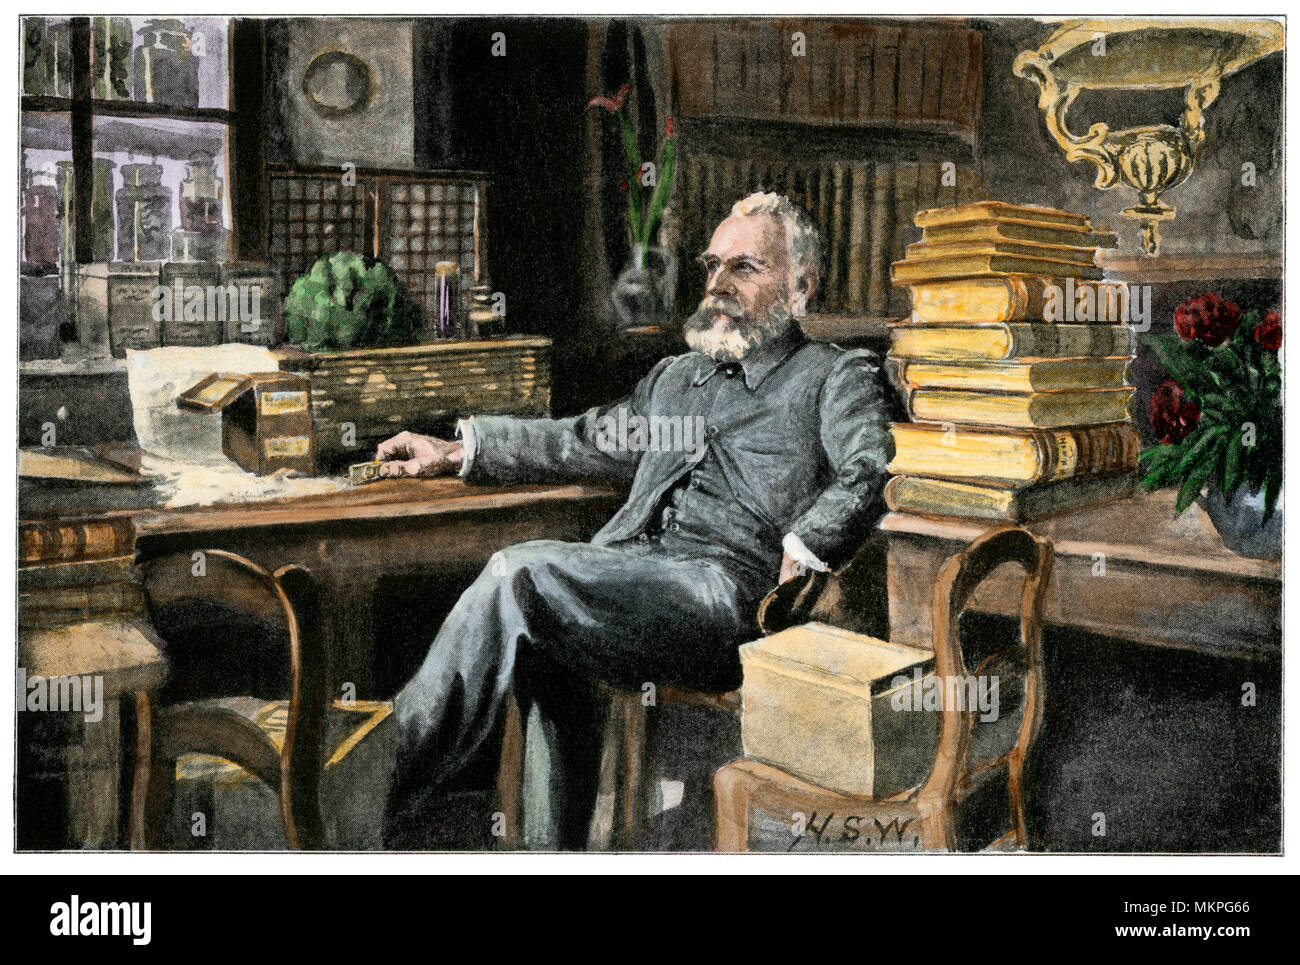 Professor Ernest Haeckel in his study, Jena University, Germany. Hand-colored halftone - Stock Image